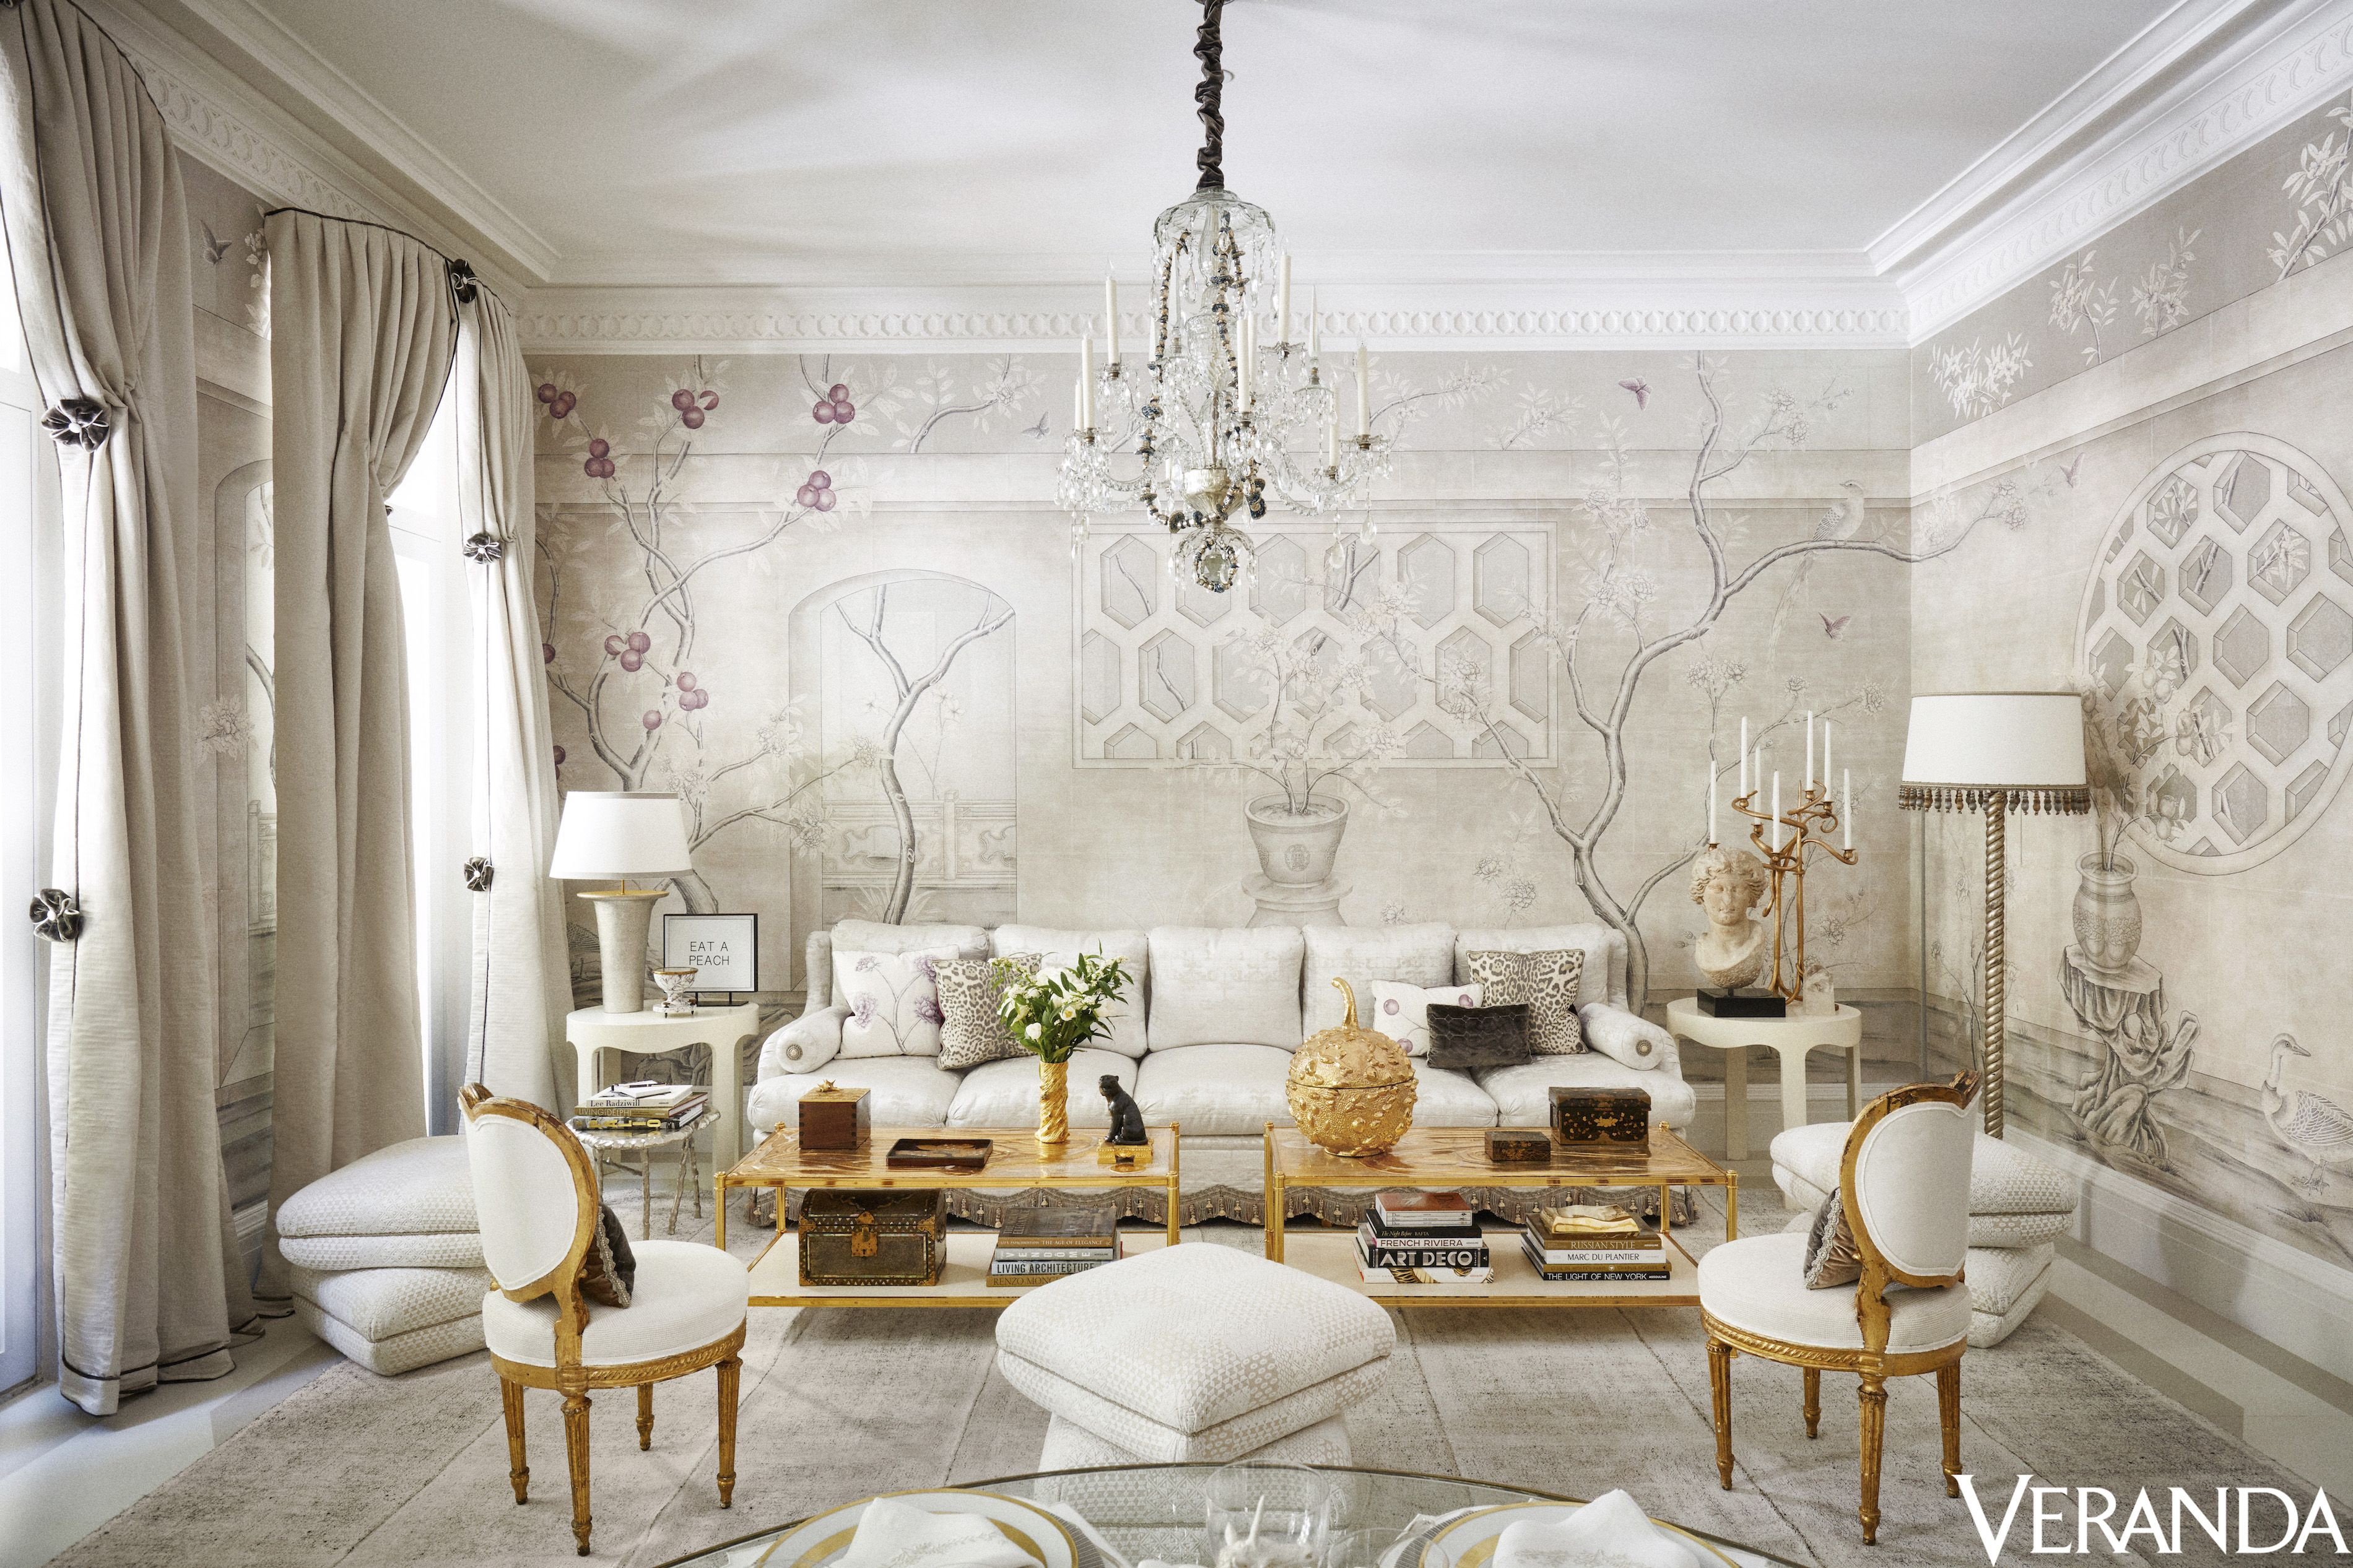 25+ Best White Room Ideas - How to Decorate an Elegant White Bedroom